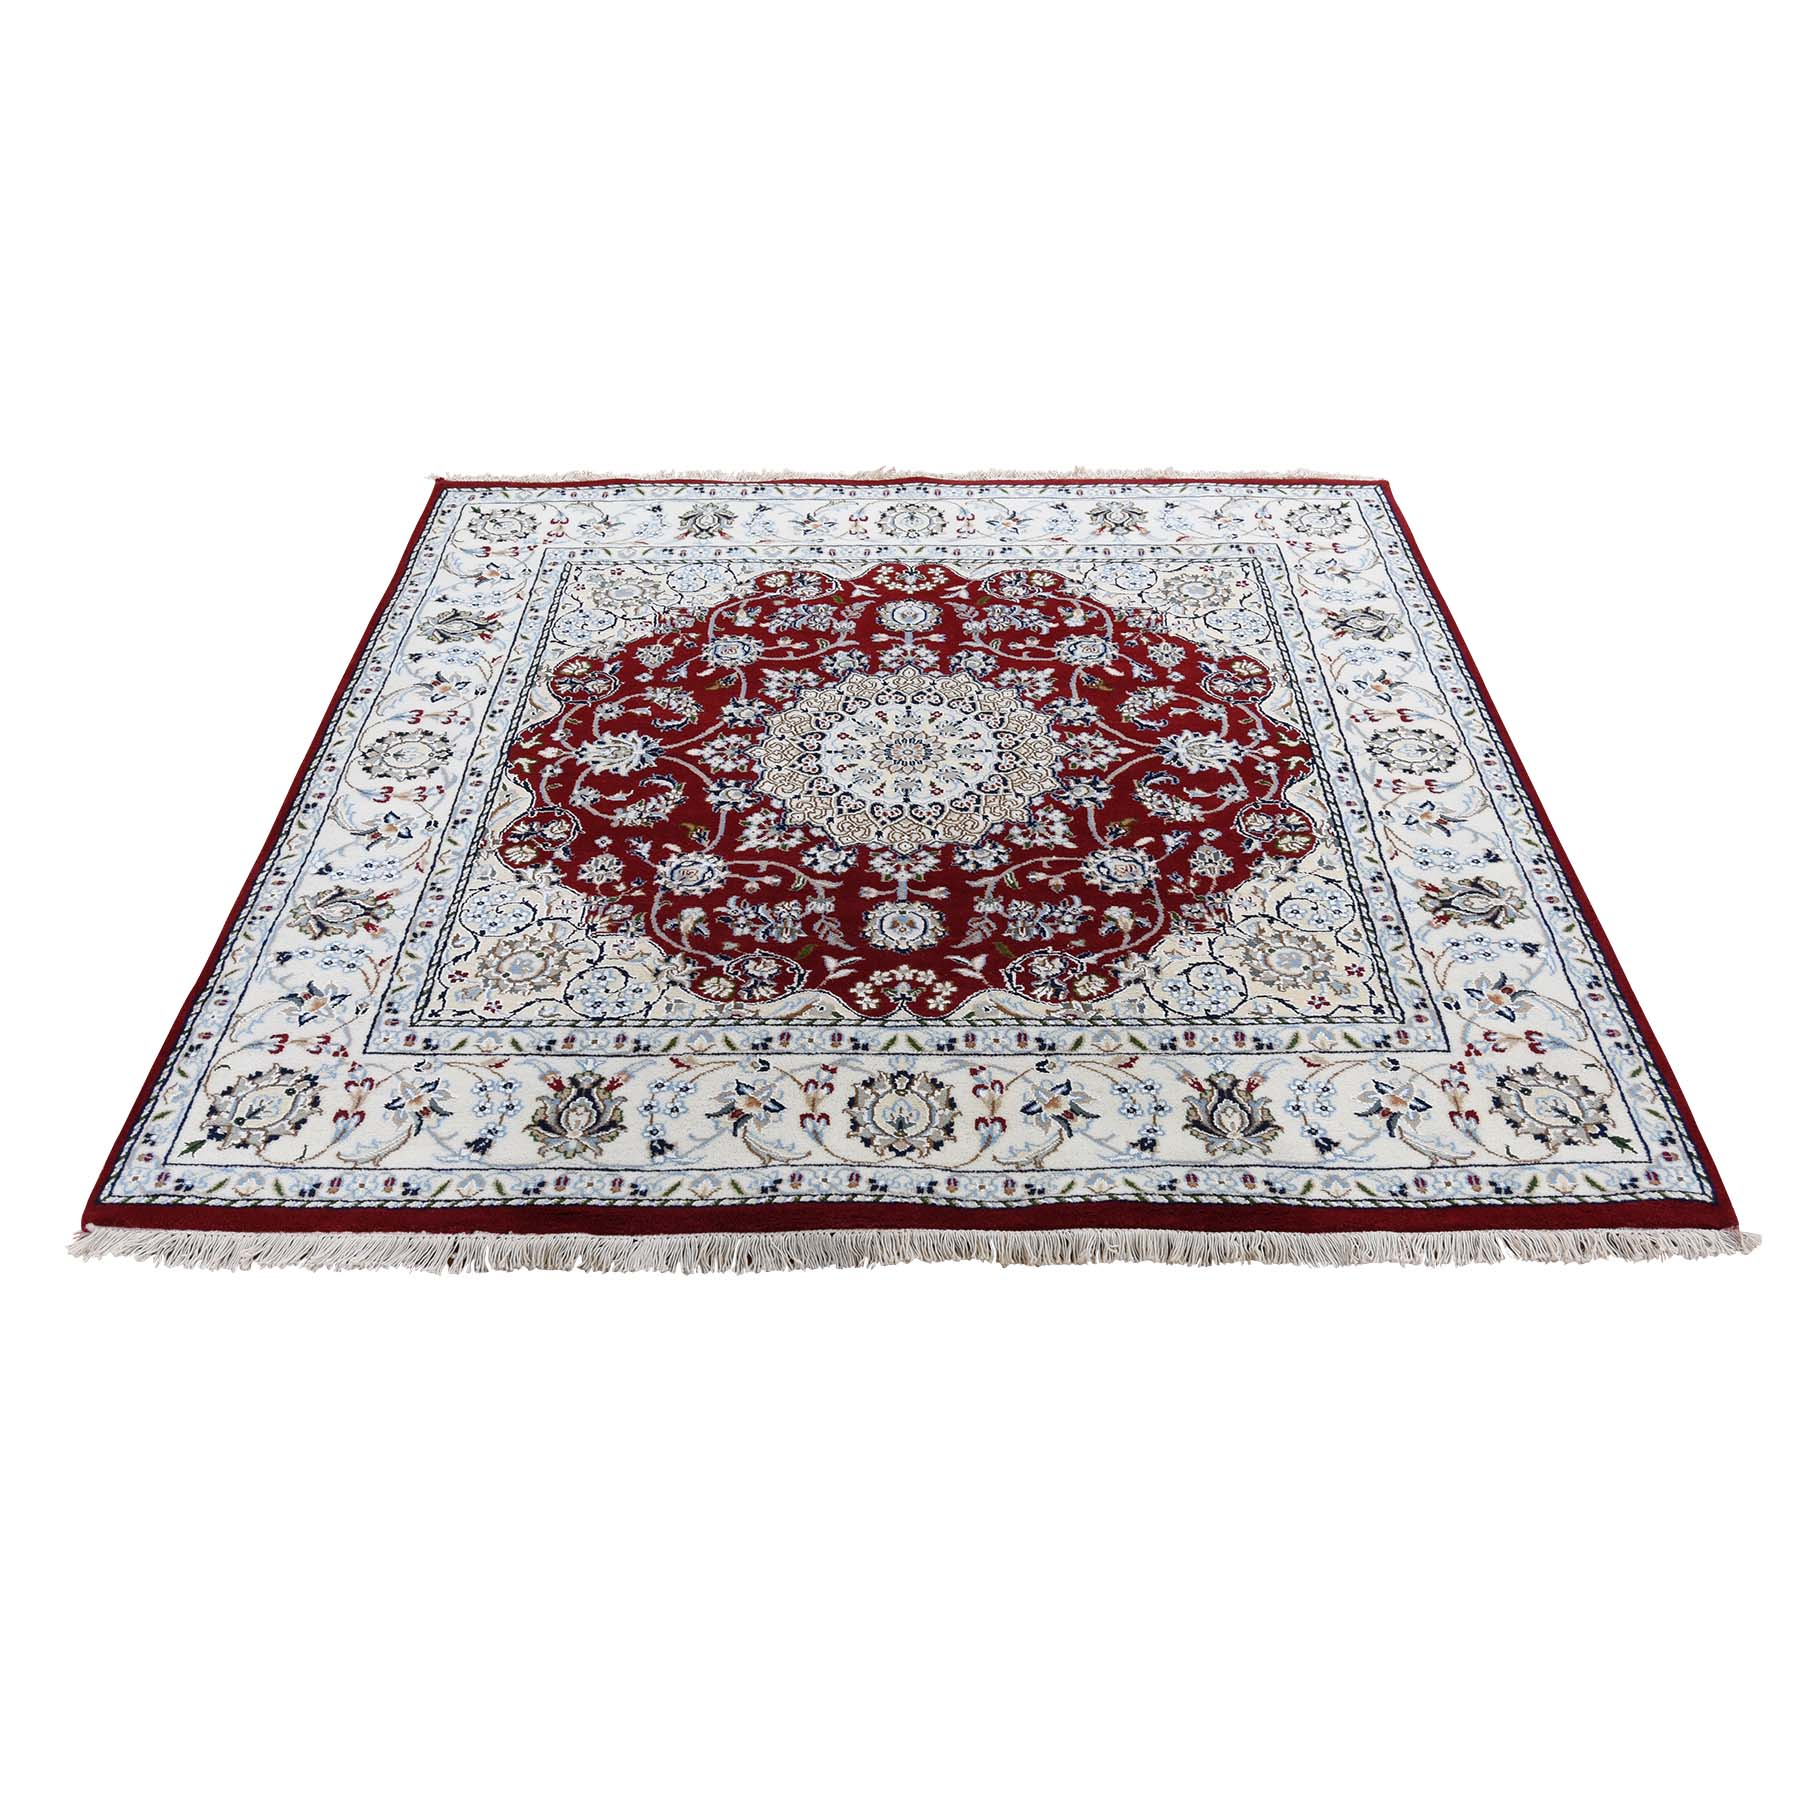 Pirniakan Collection Hand Knotted Red Rug No: 192736